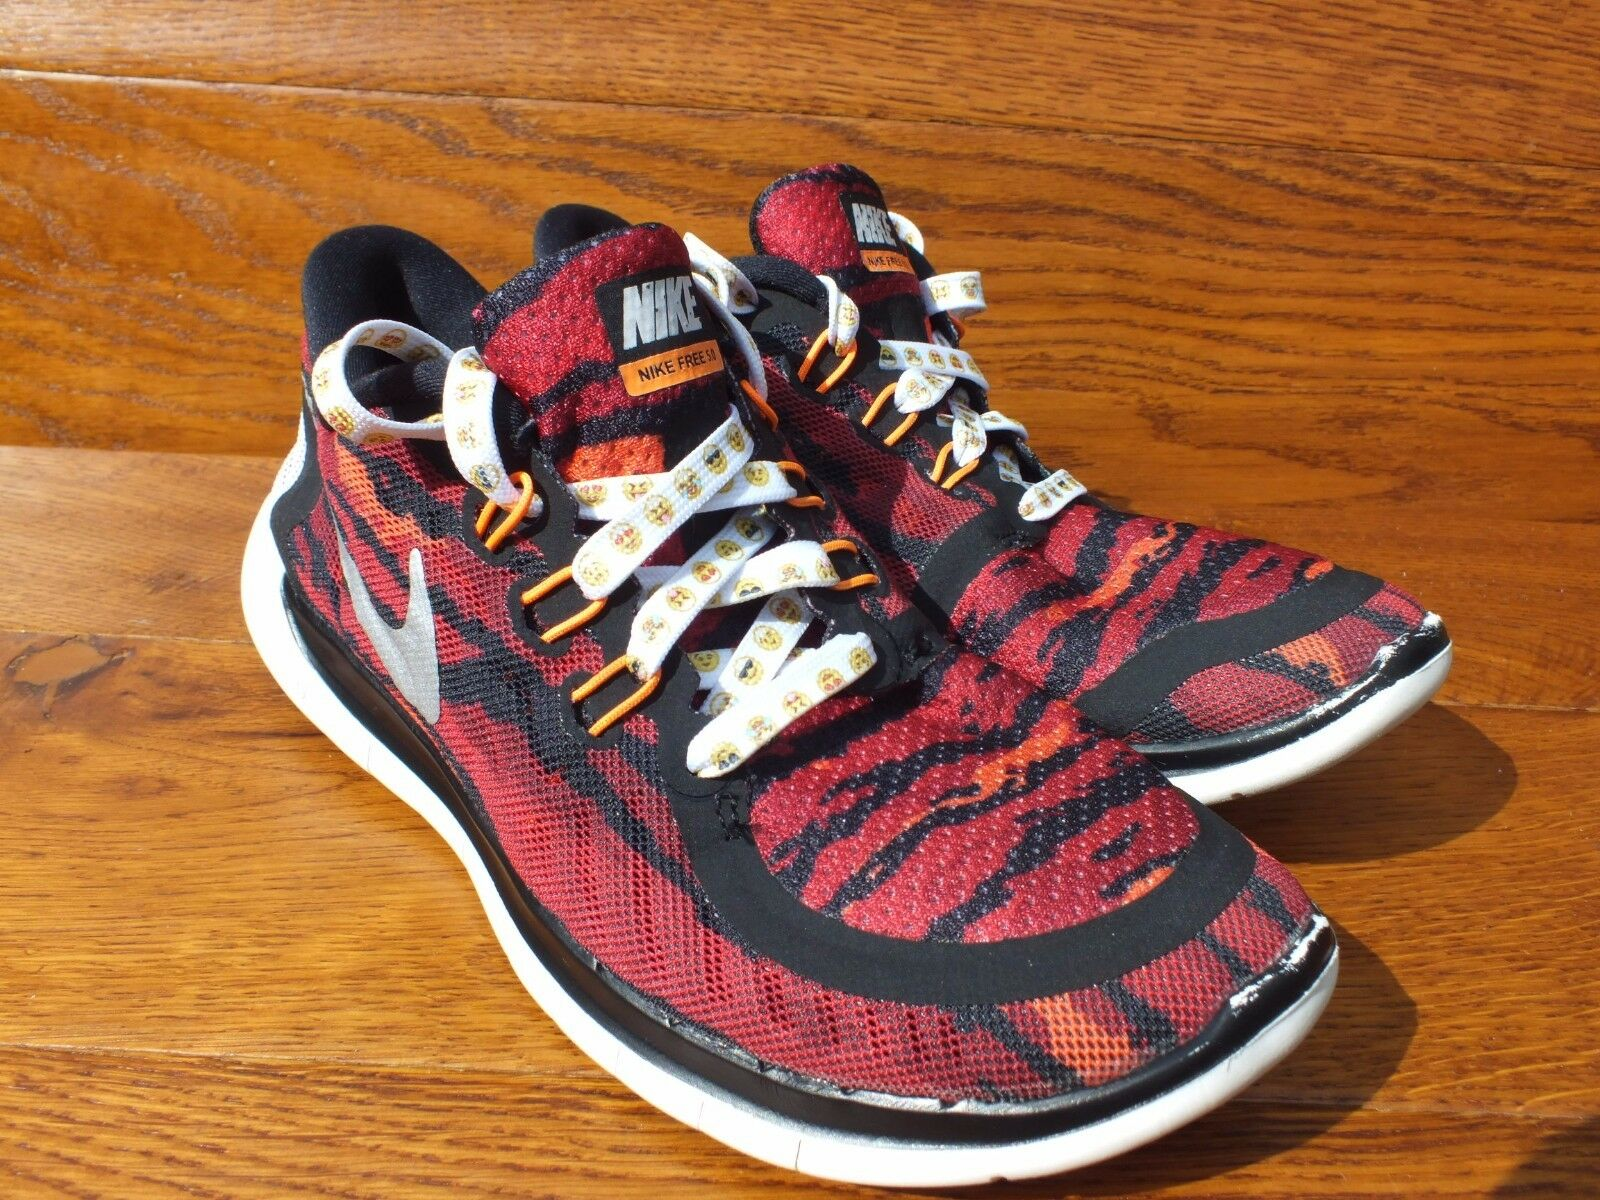 Nike Free 5.0 Running Shoes Trainers Trainers Shoes d84d28